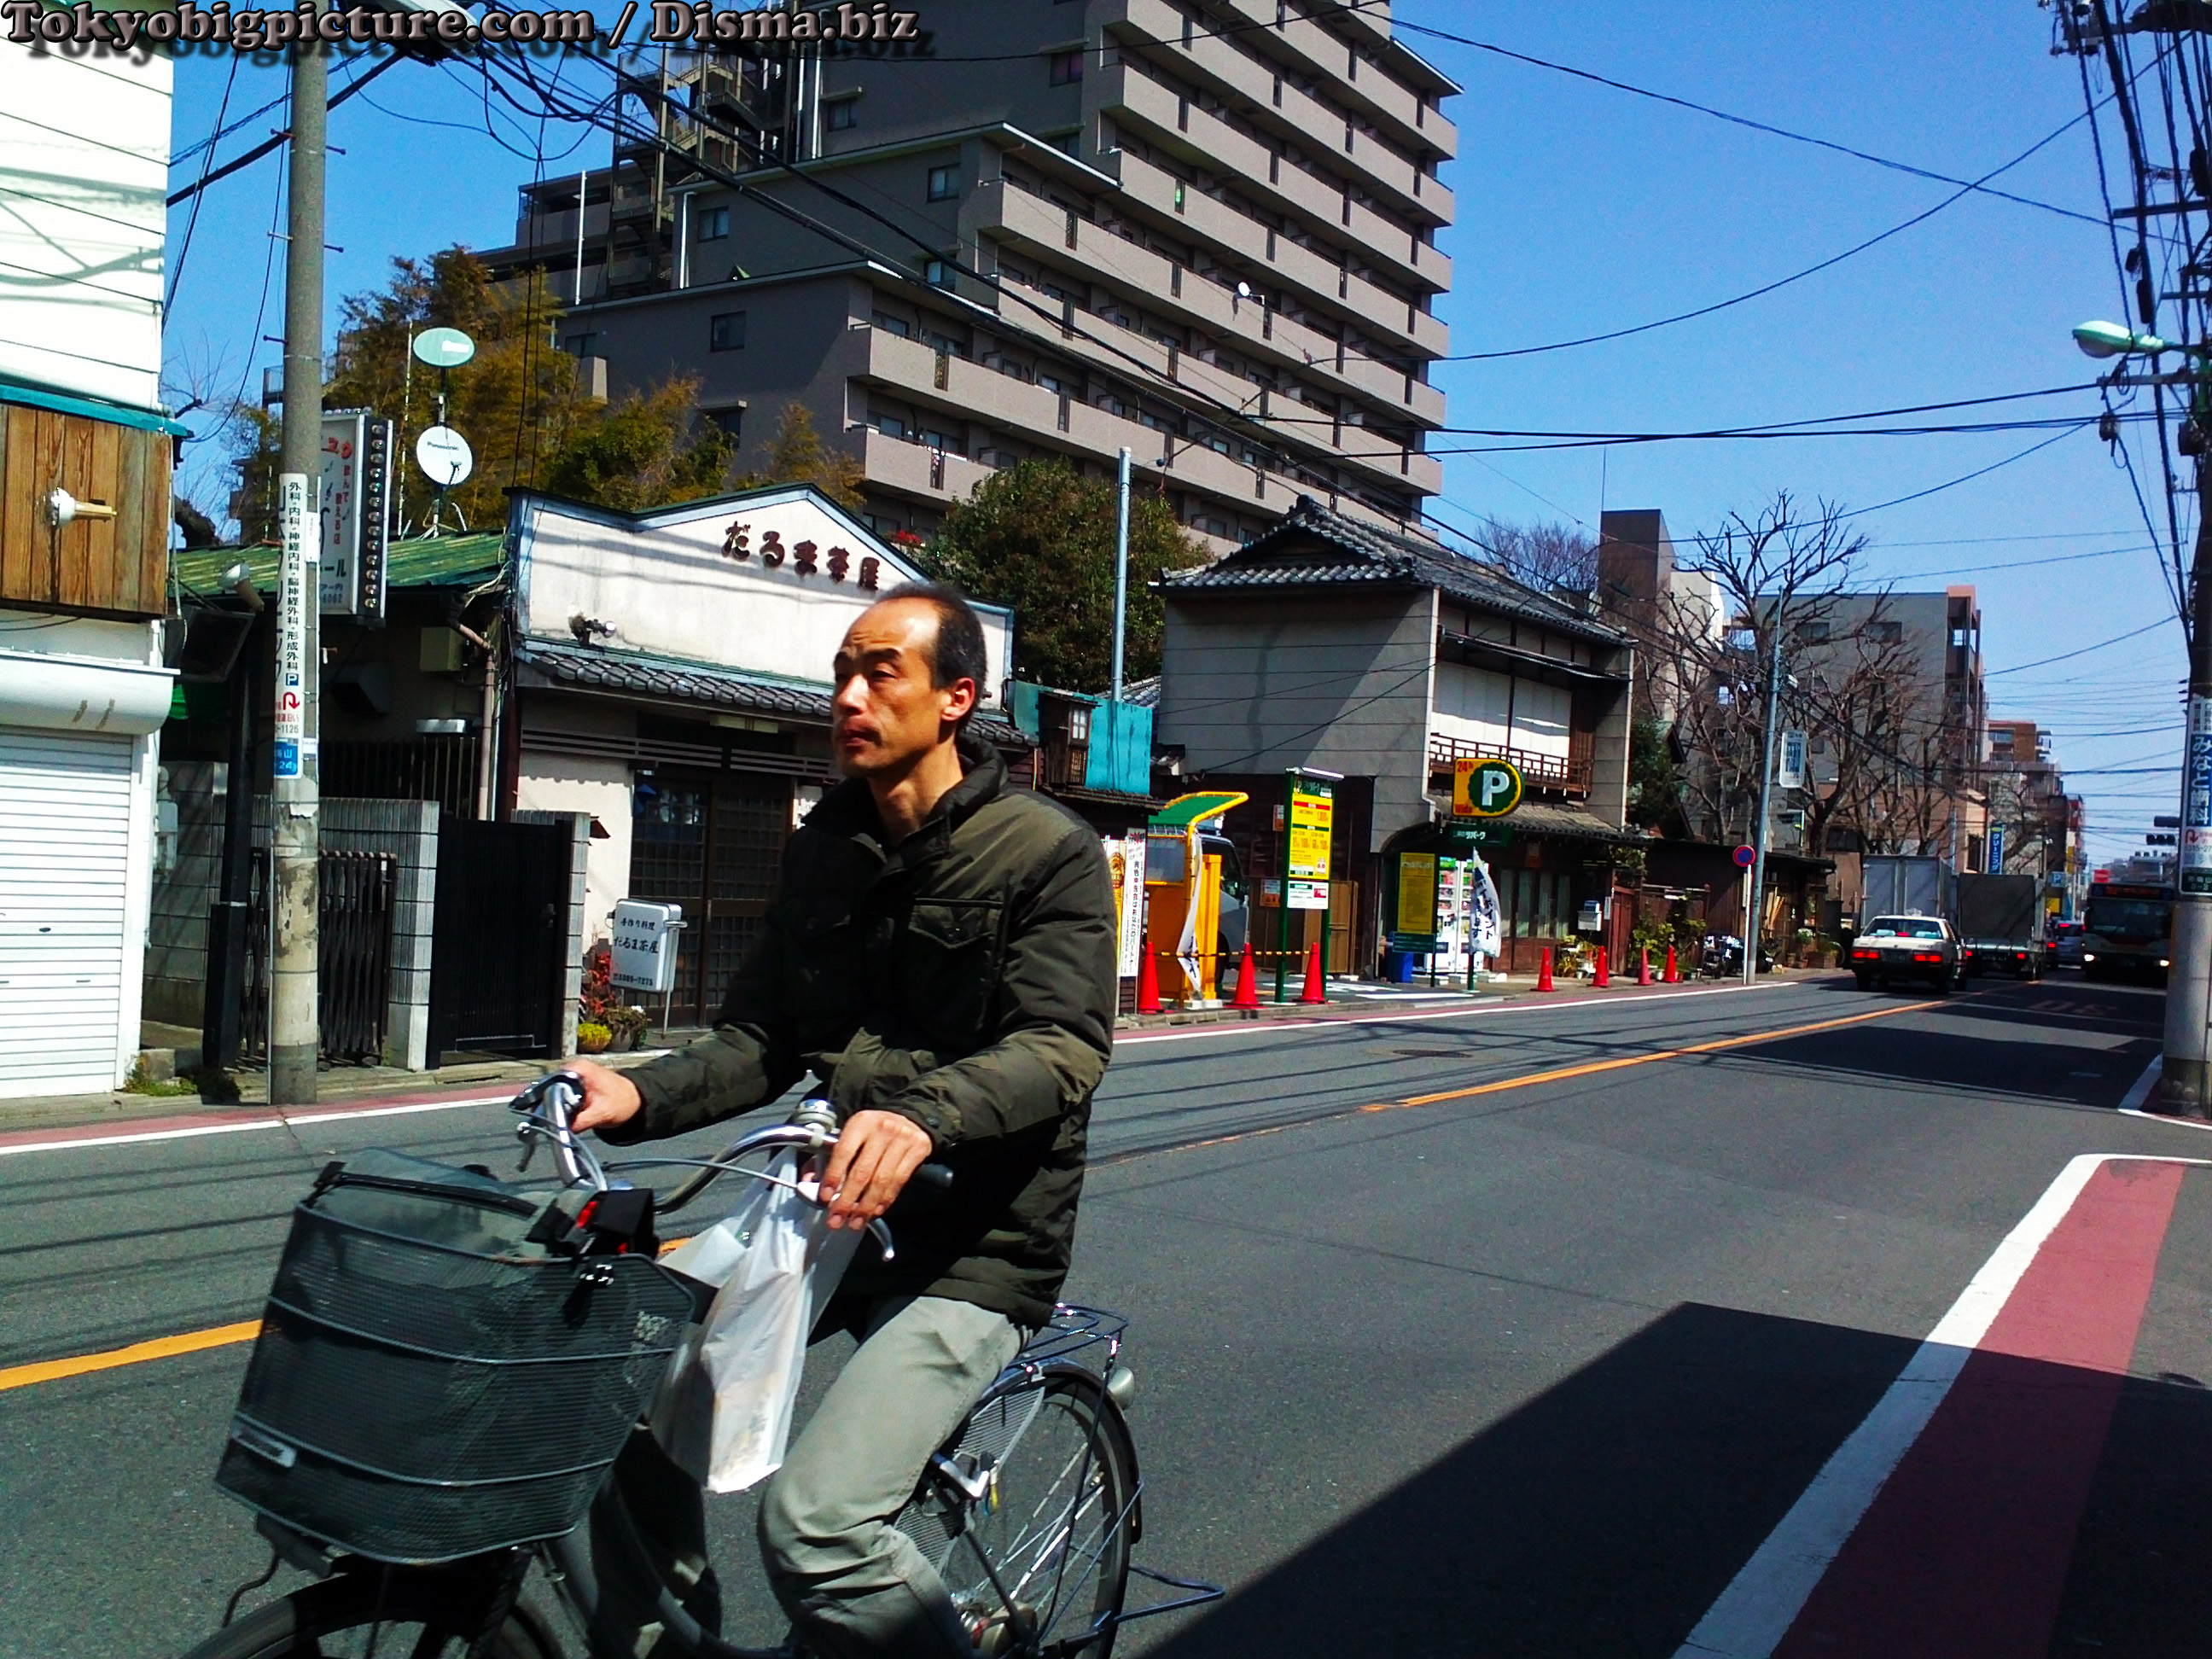 Bicycle Tour In Tokyo And Others Pictures